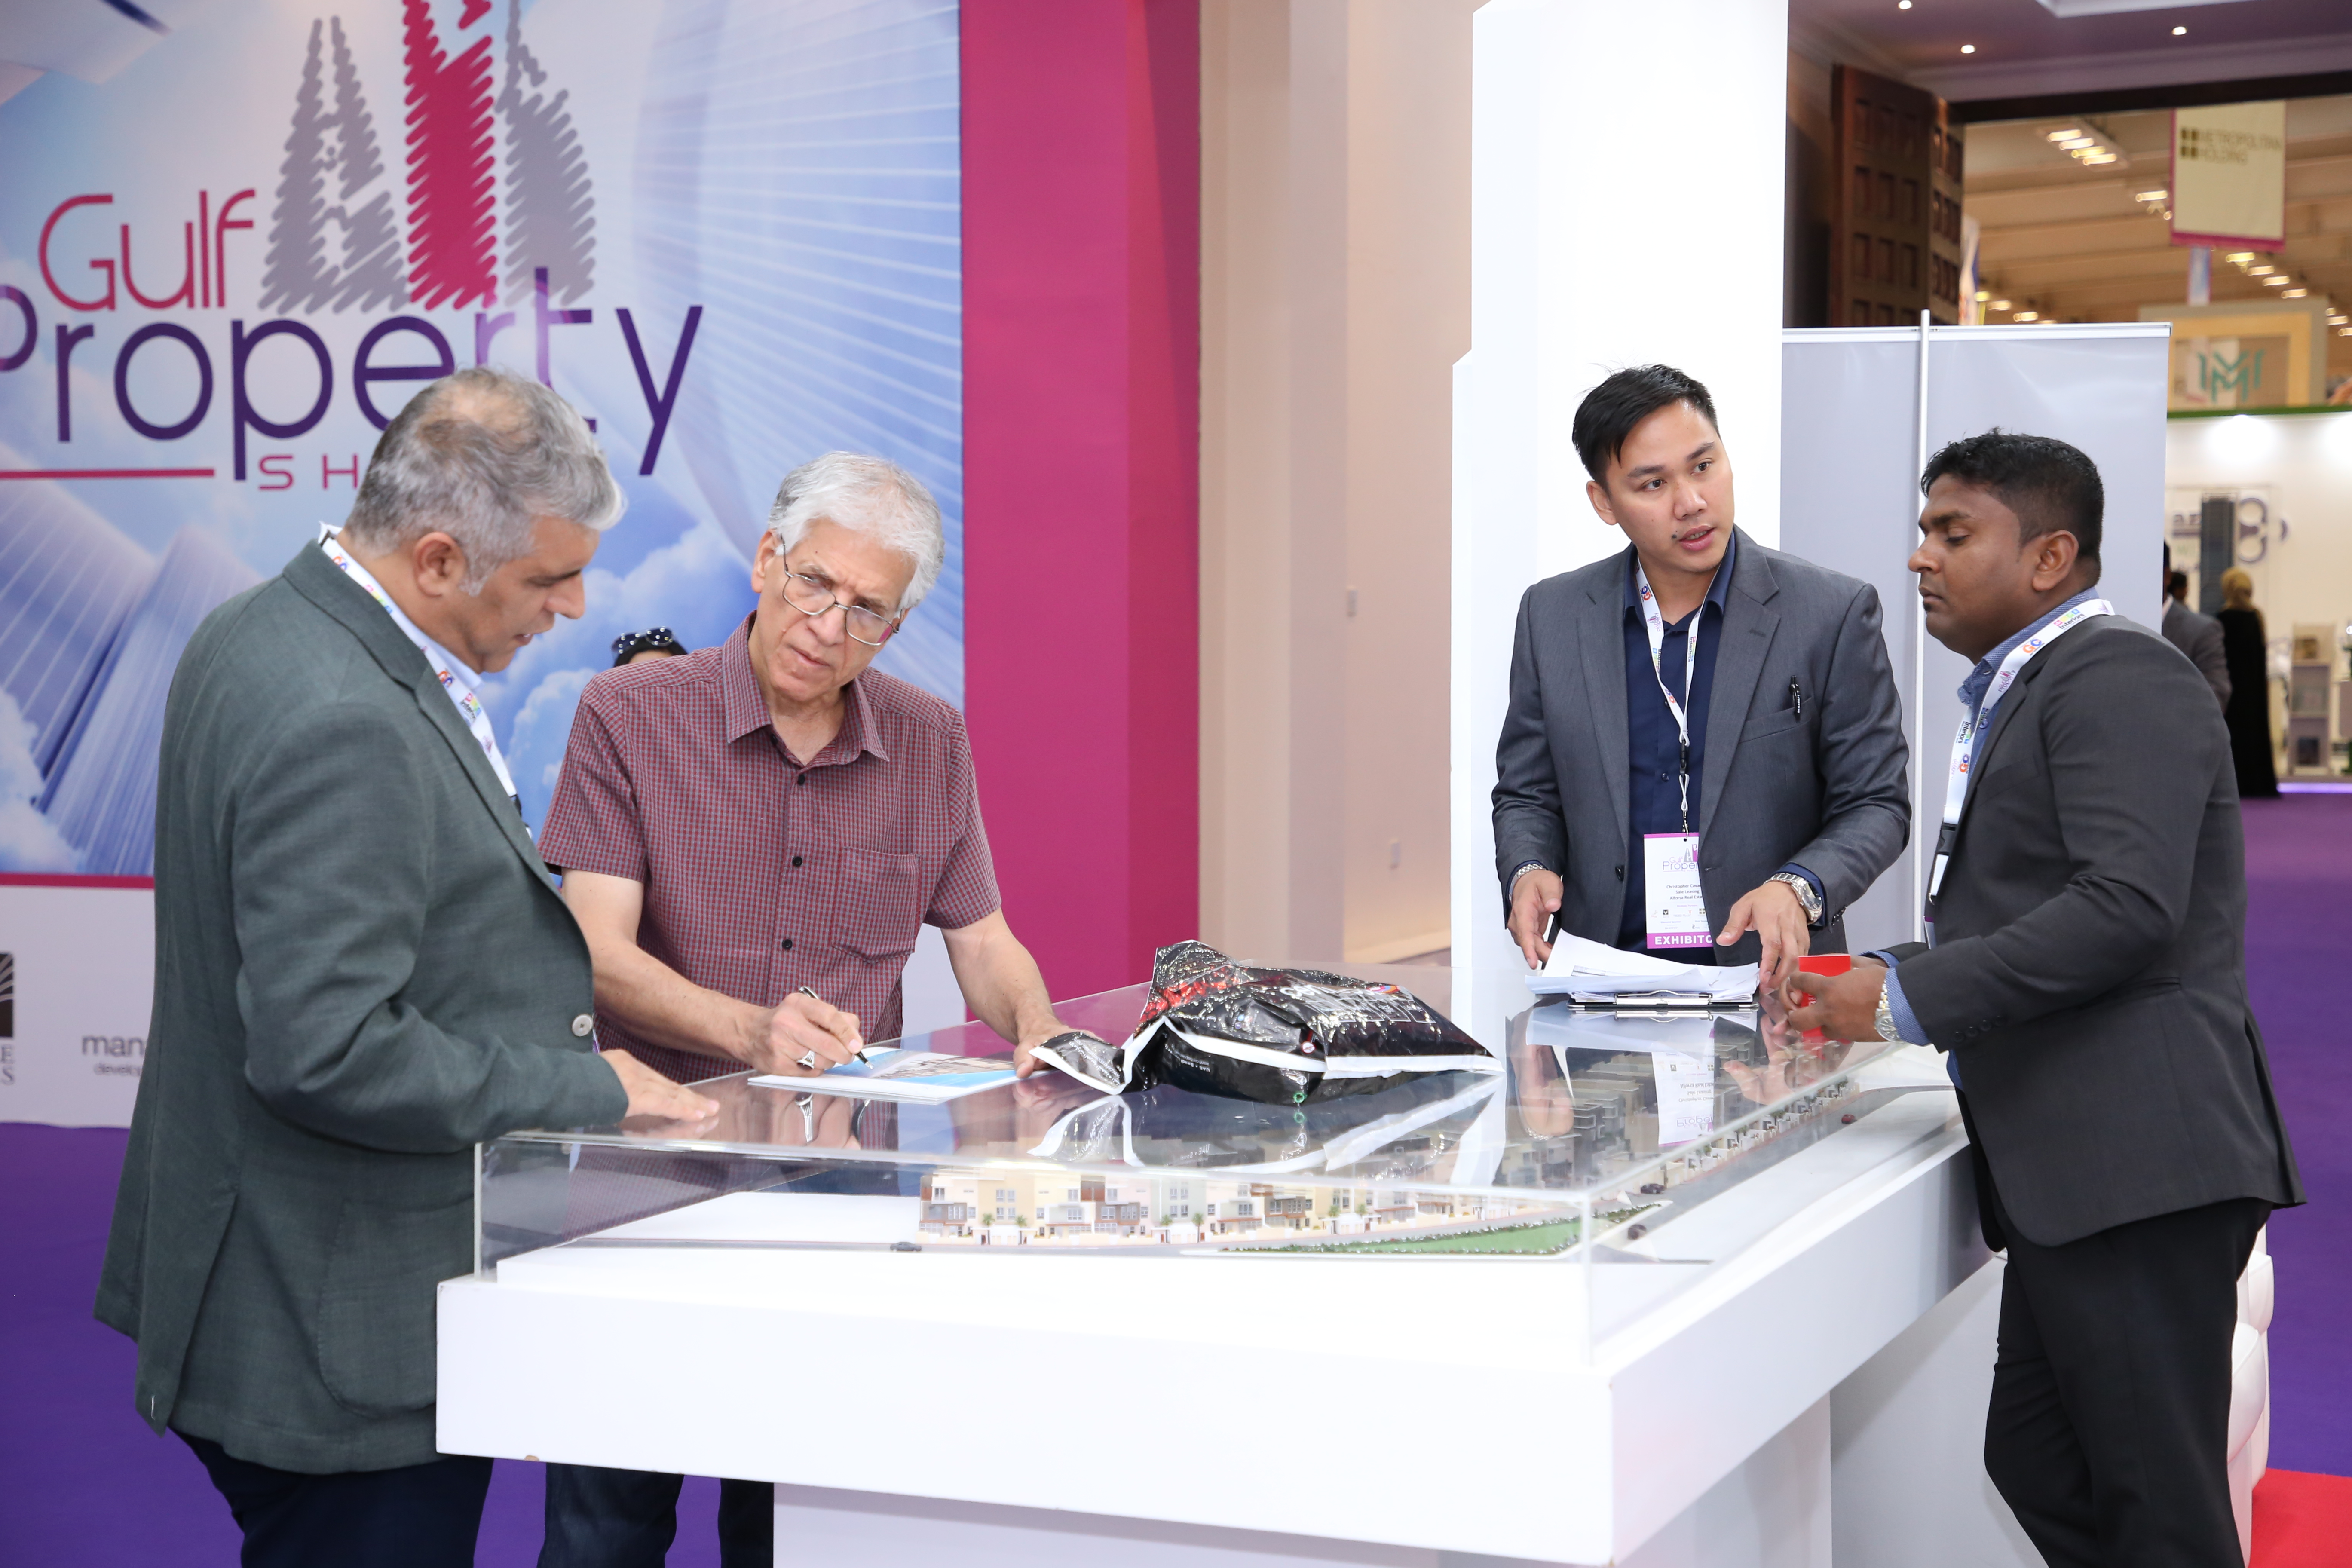 Gulf Property Show 2018 Opens